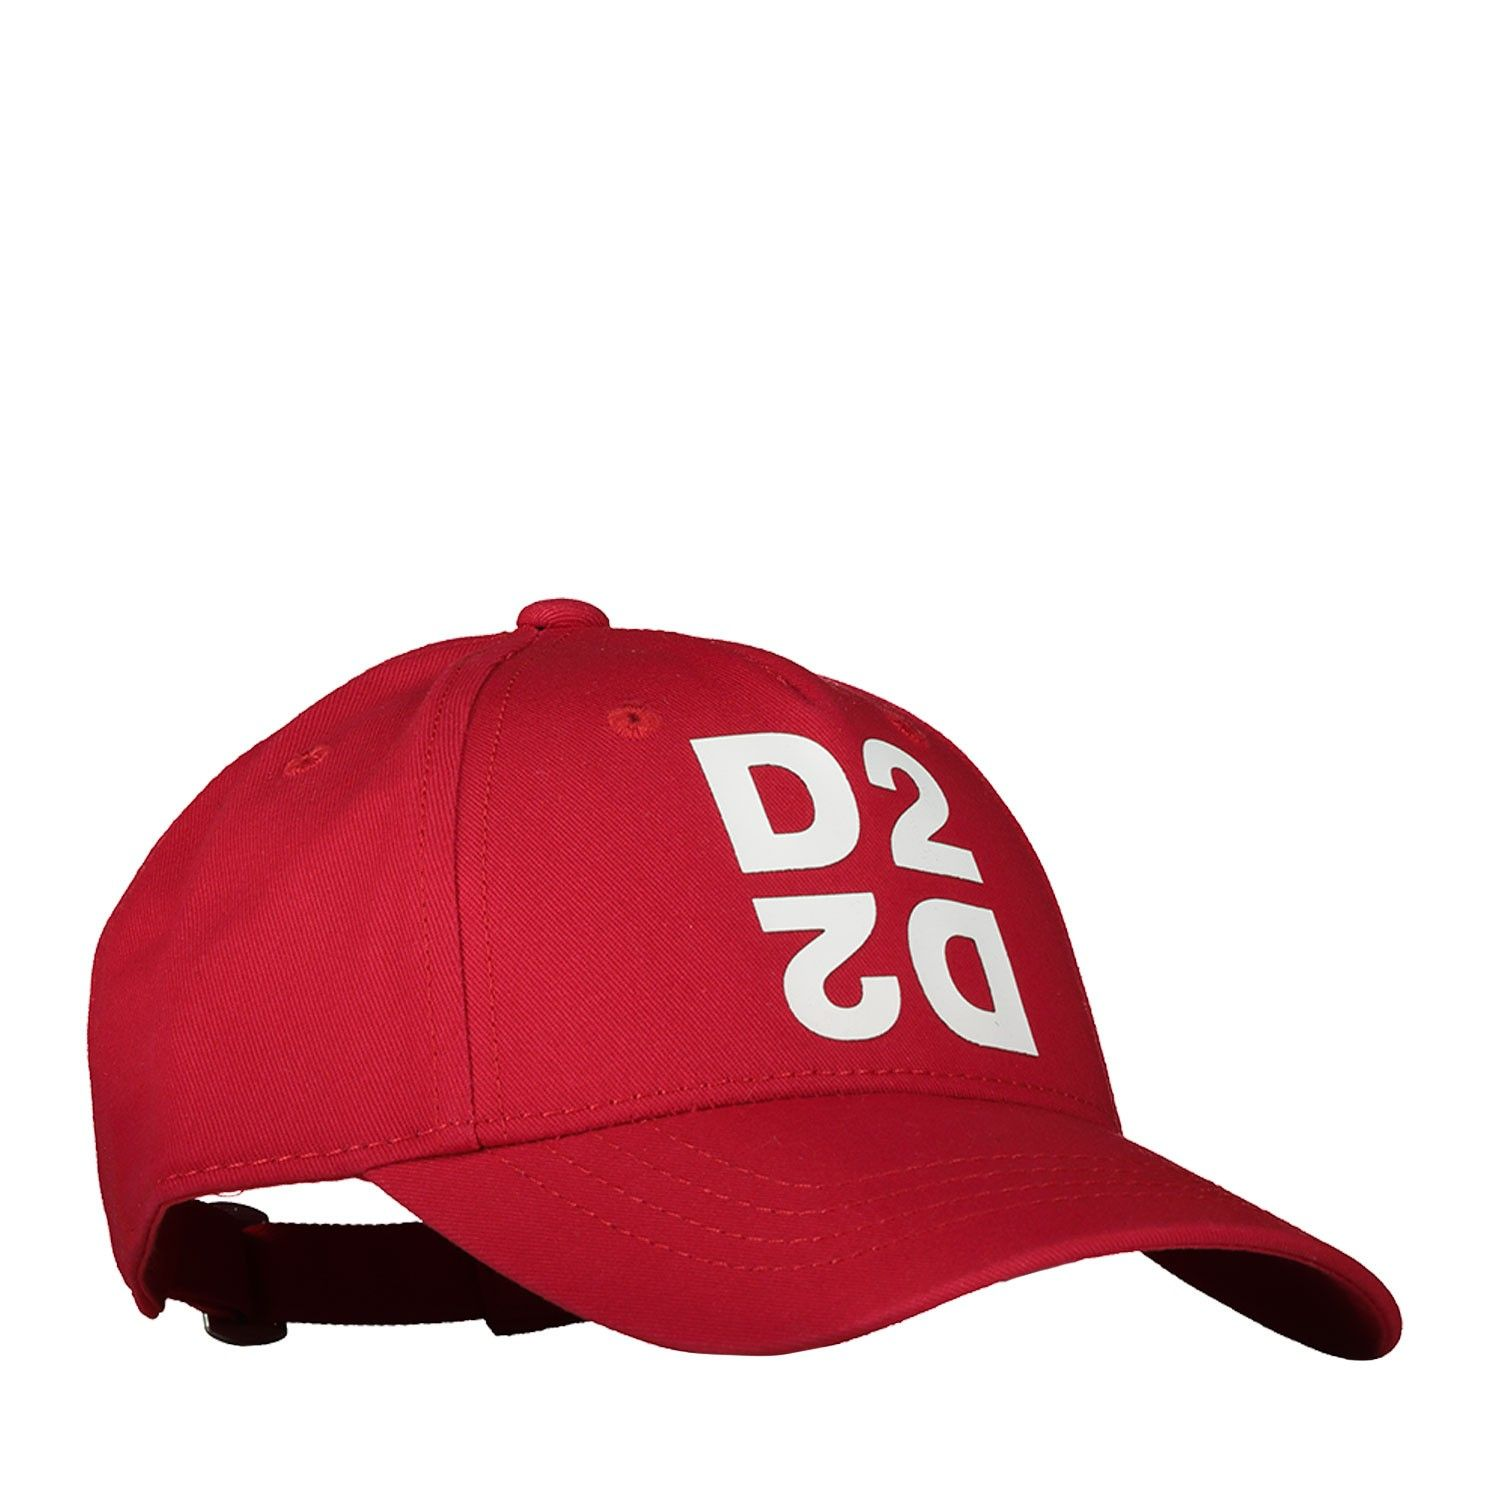 Picture of Dsquared2 DQ0424 baby hat red